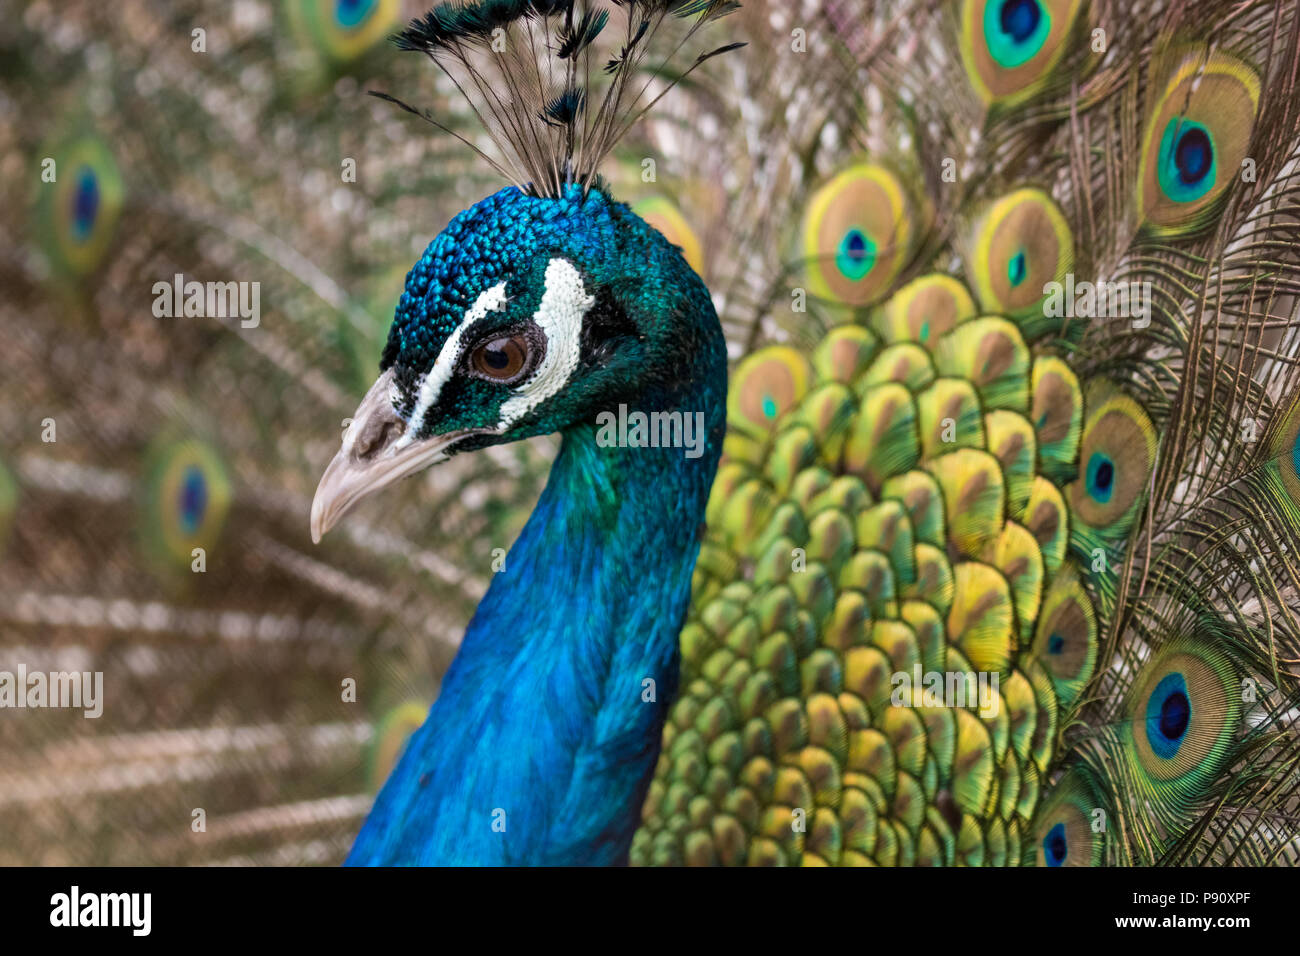 Beautiful male peacock, portrait with his colorful yellow, green and blue feathers out, close-up - Stock Image